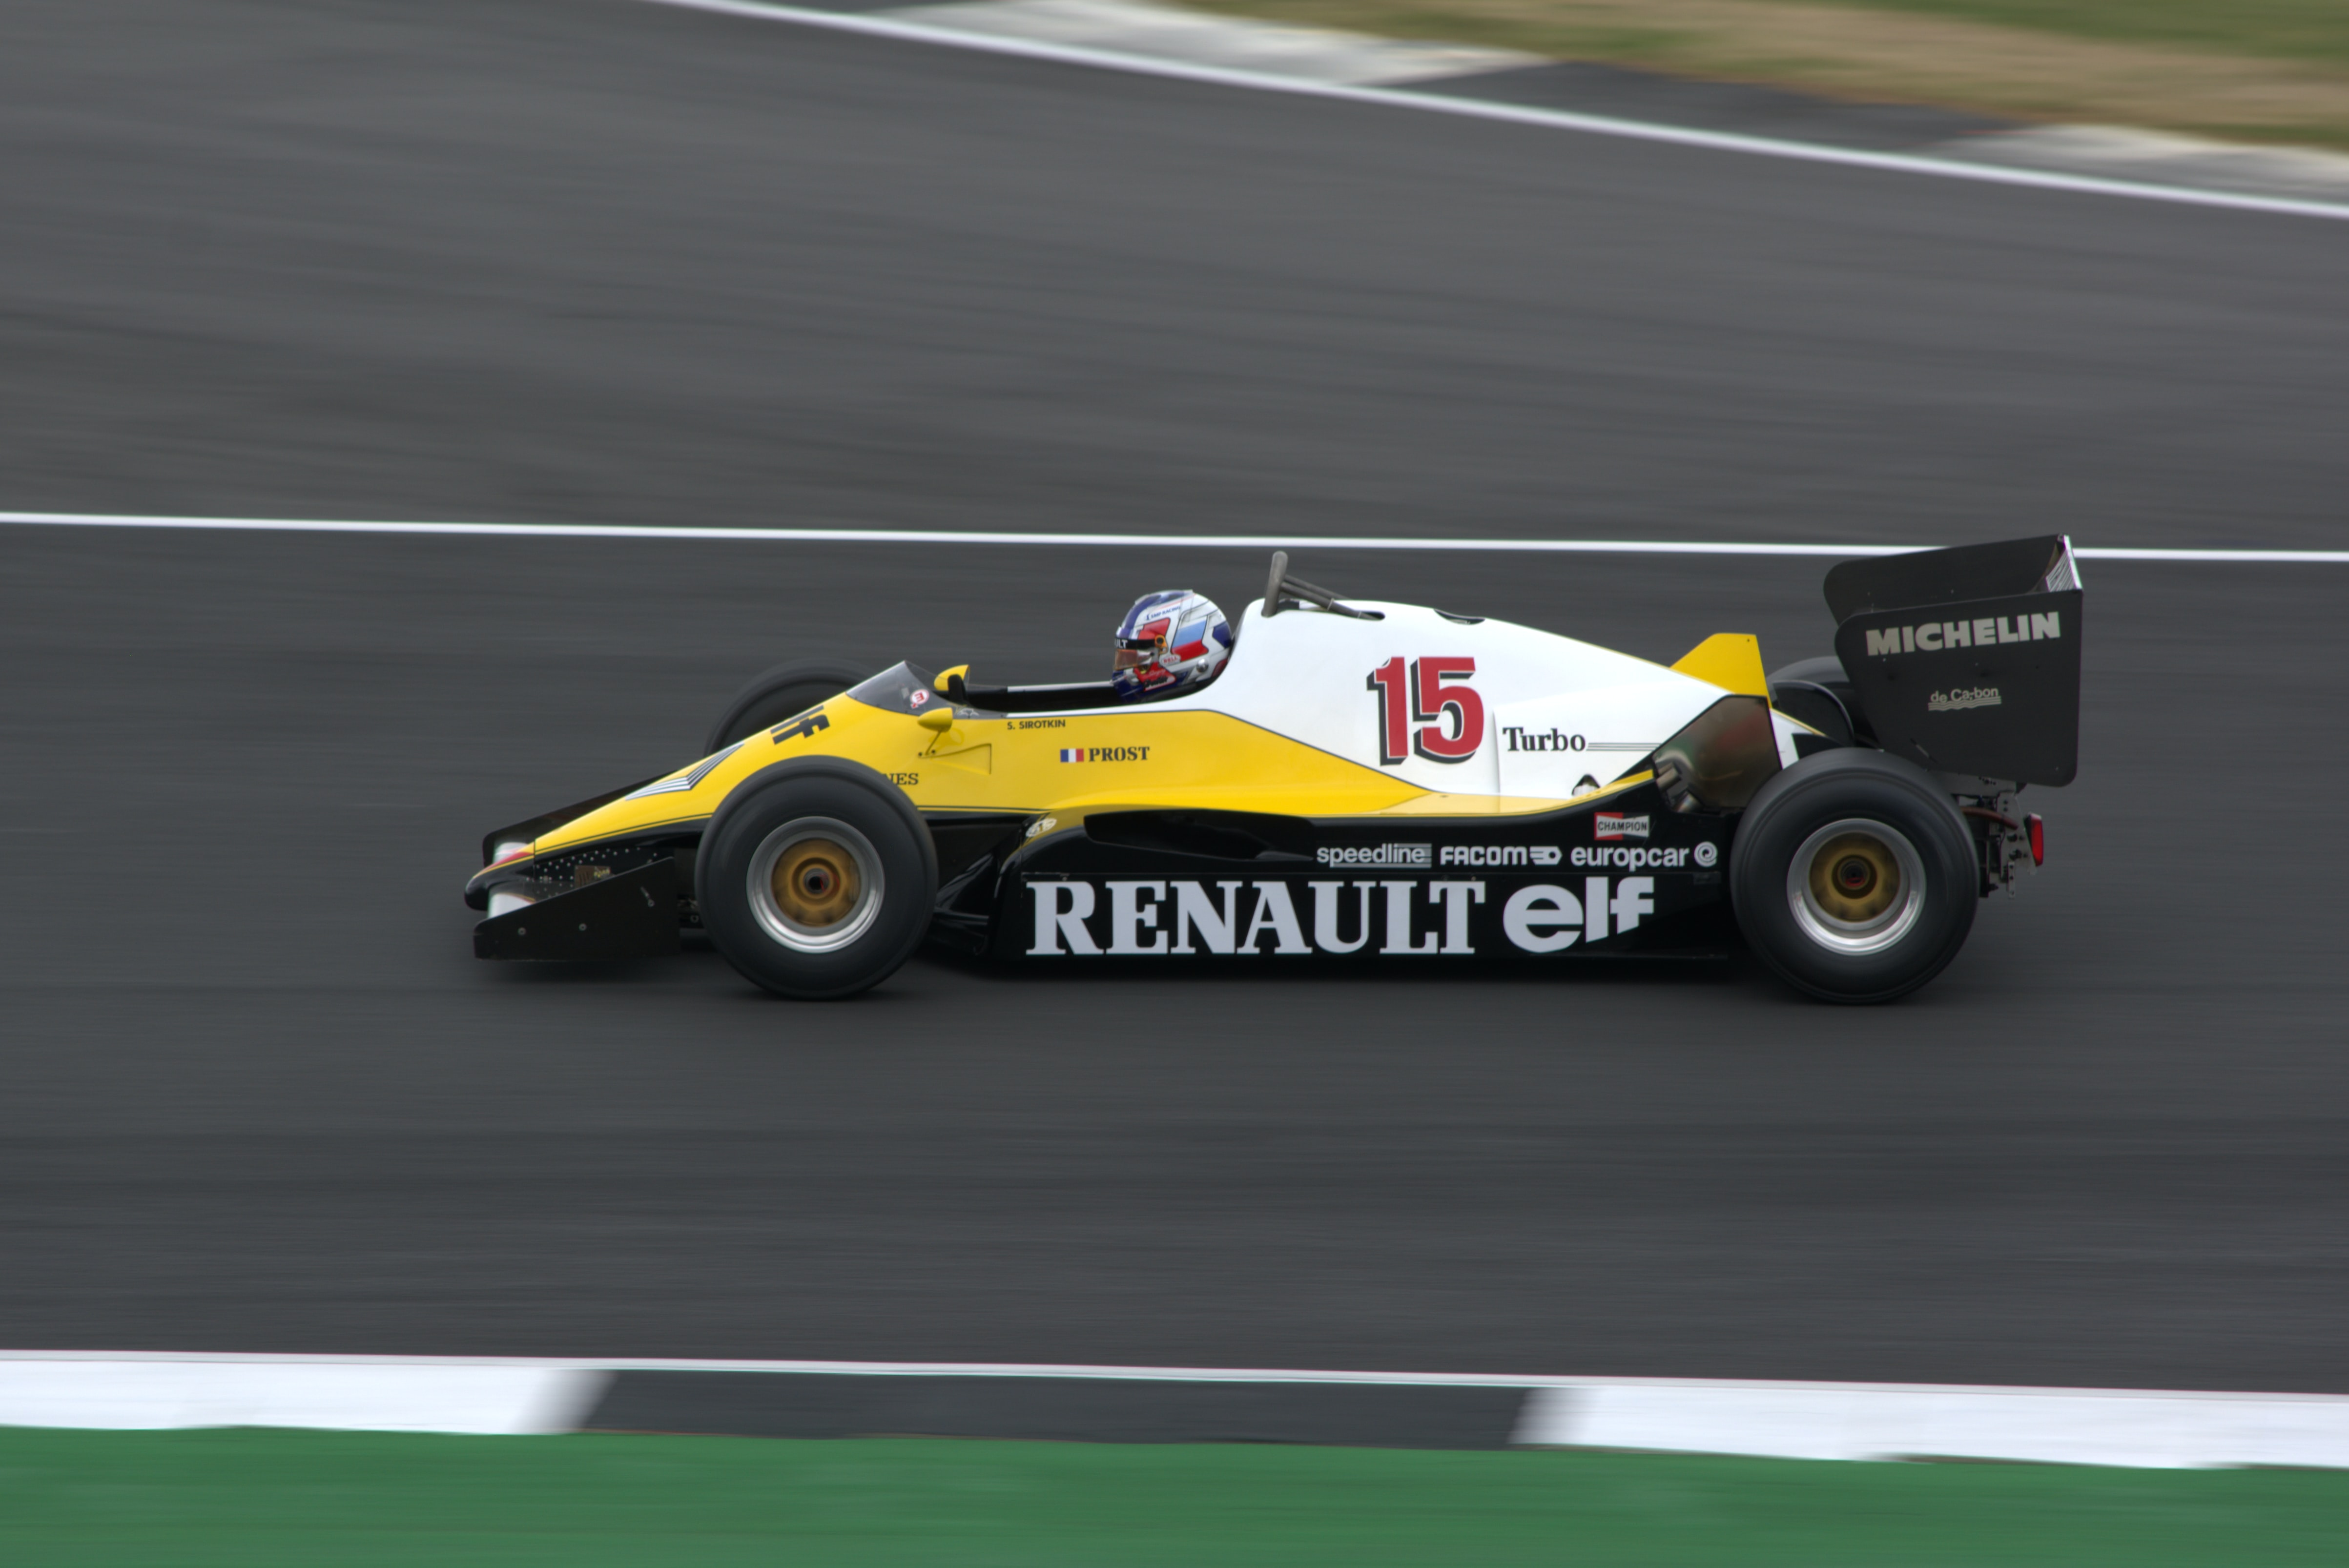 Renault Elf F-1 race car on track